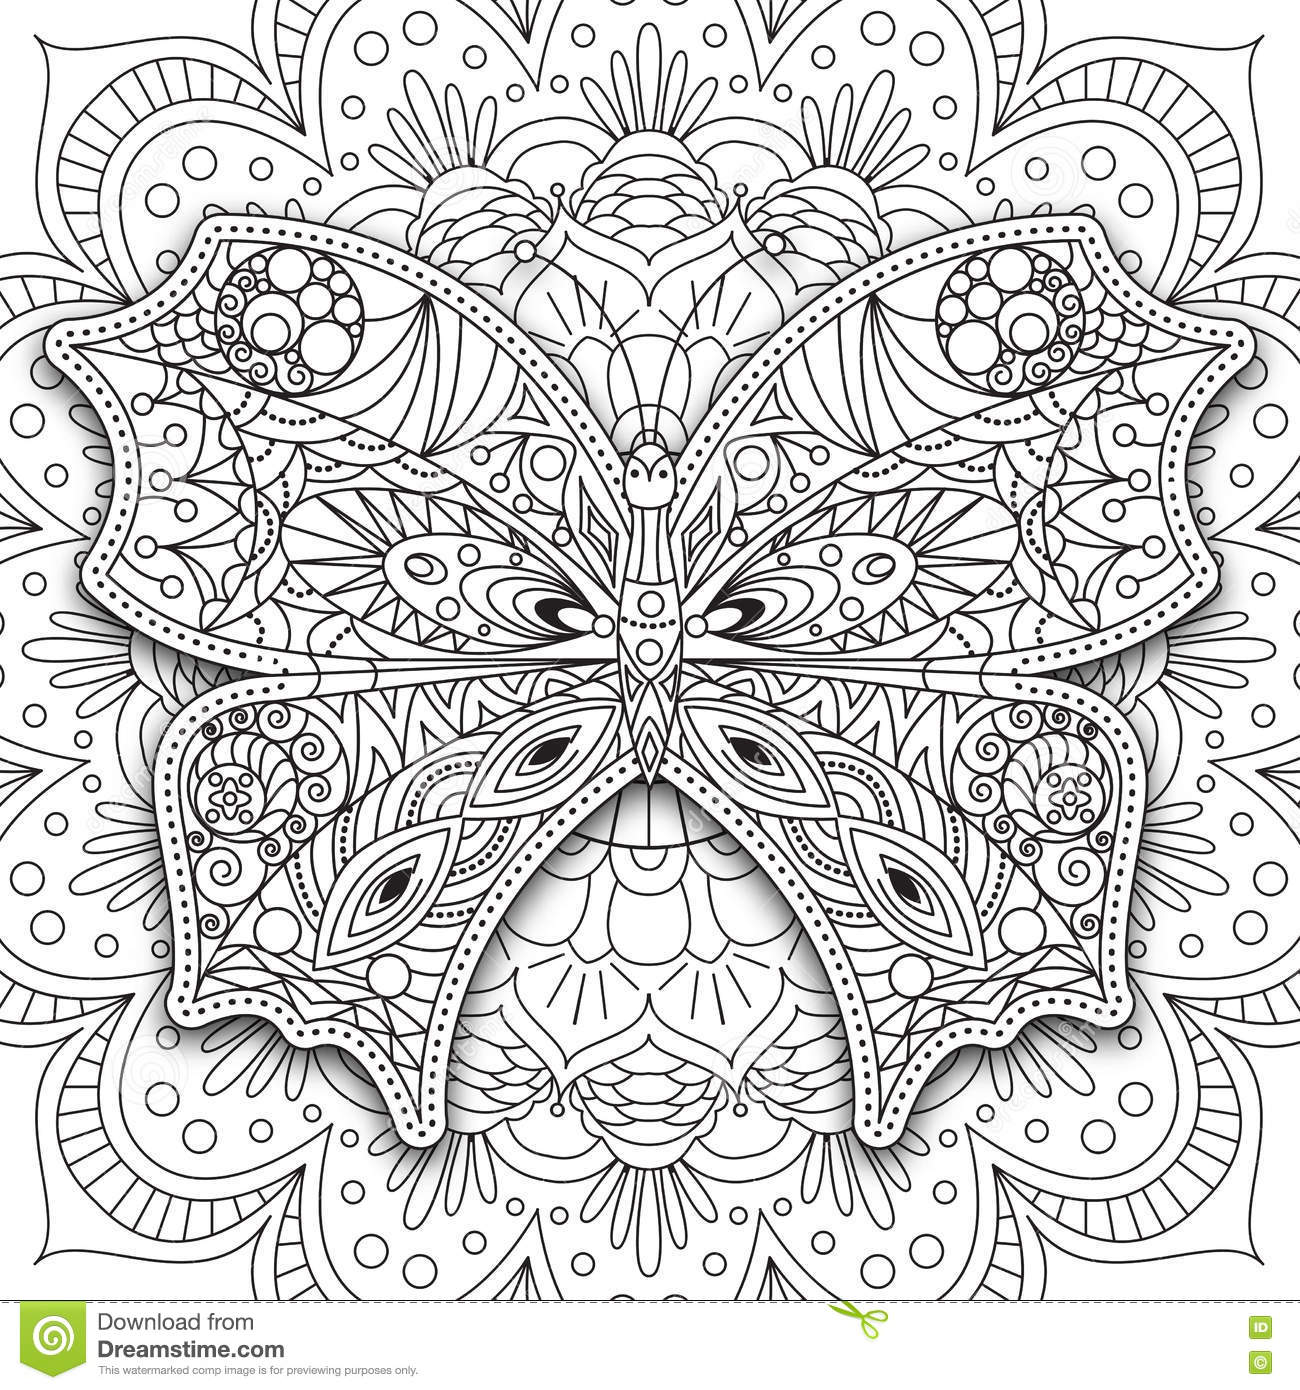 Butterfly Hand Drawn Ethnic Printable Vector In Doodle